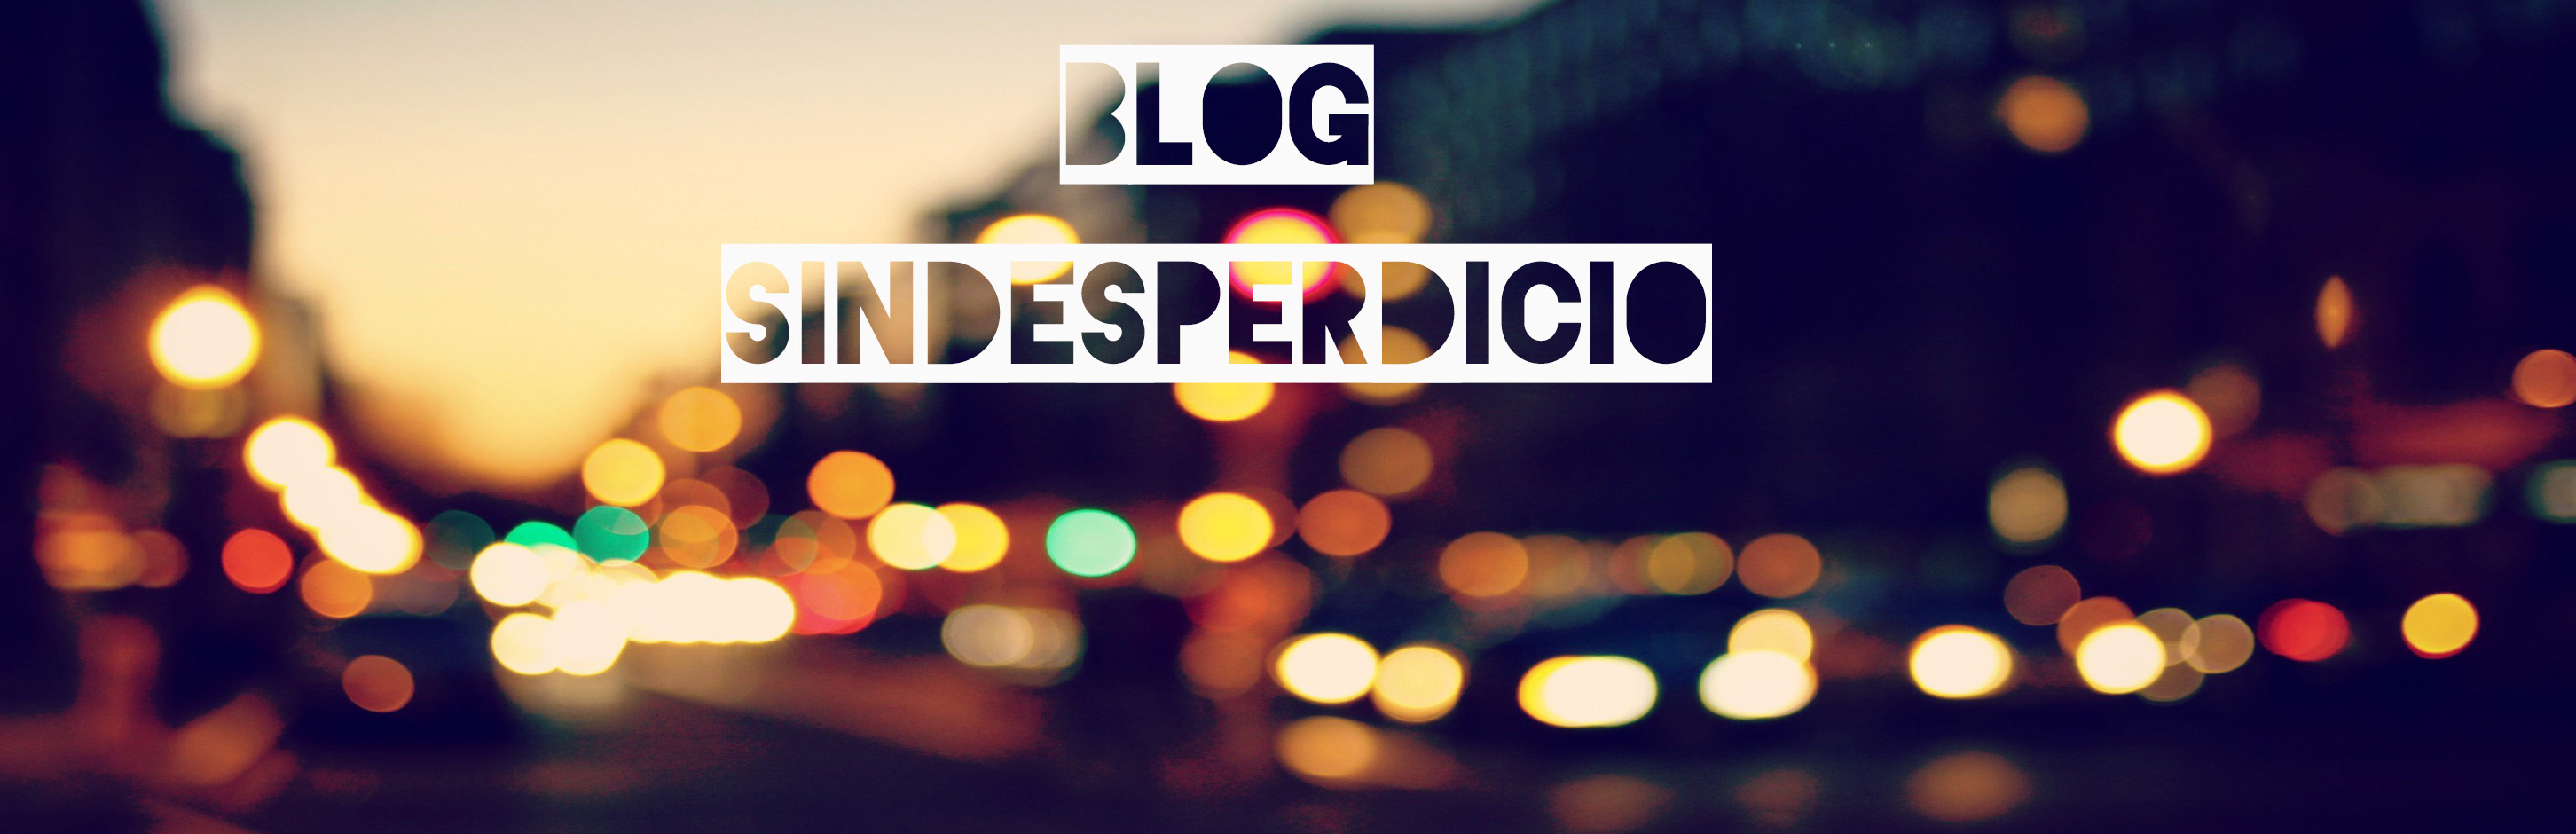 Blog Sin Desperdicio